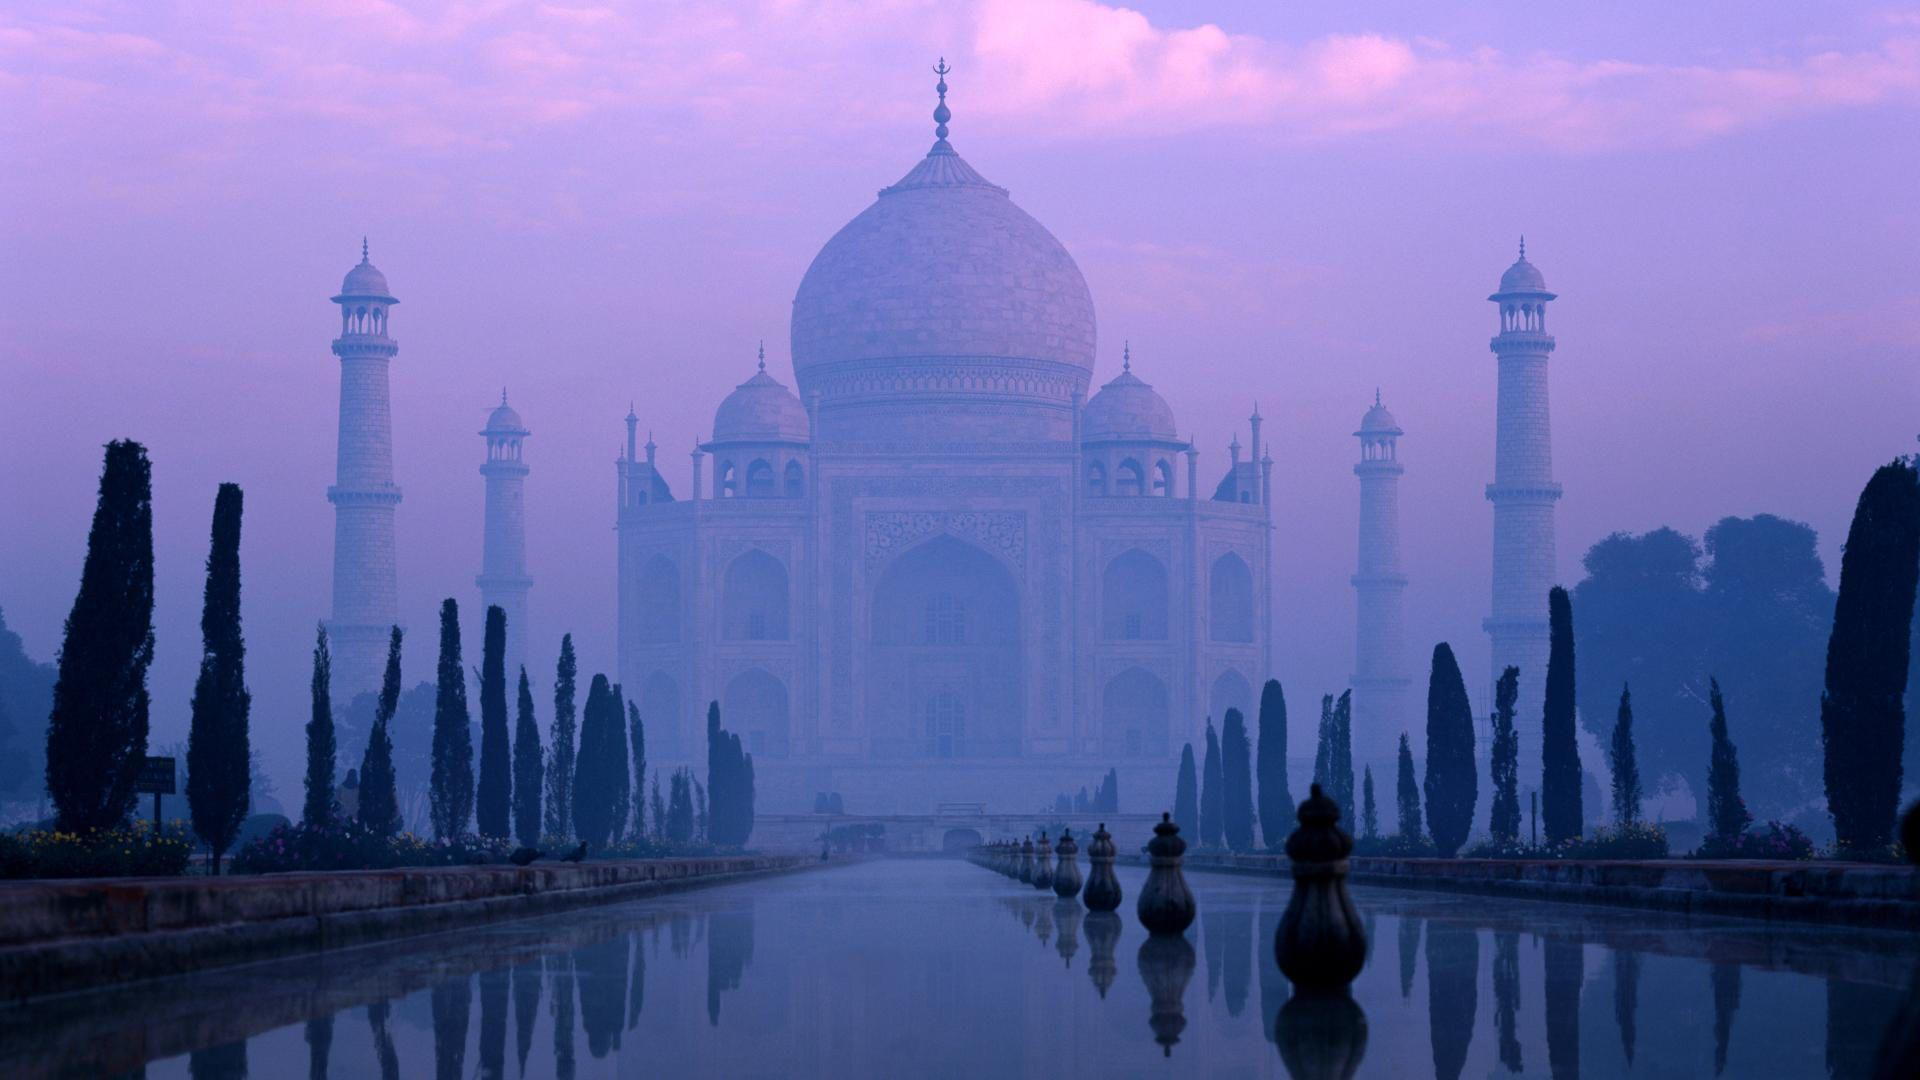 Wallpaper Indian: Travel Wallpapers India #4810 |.Ssofc